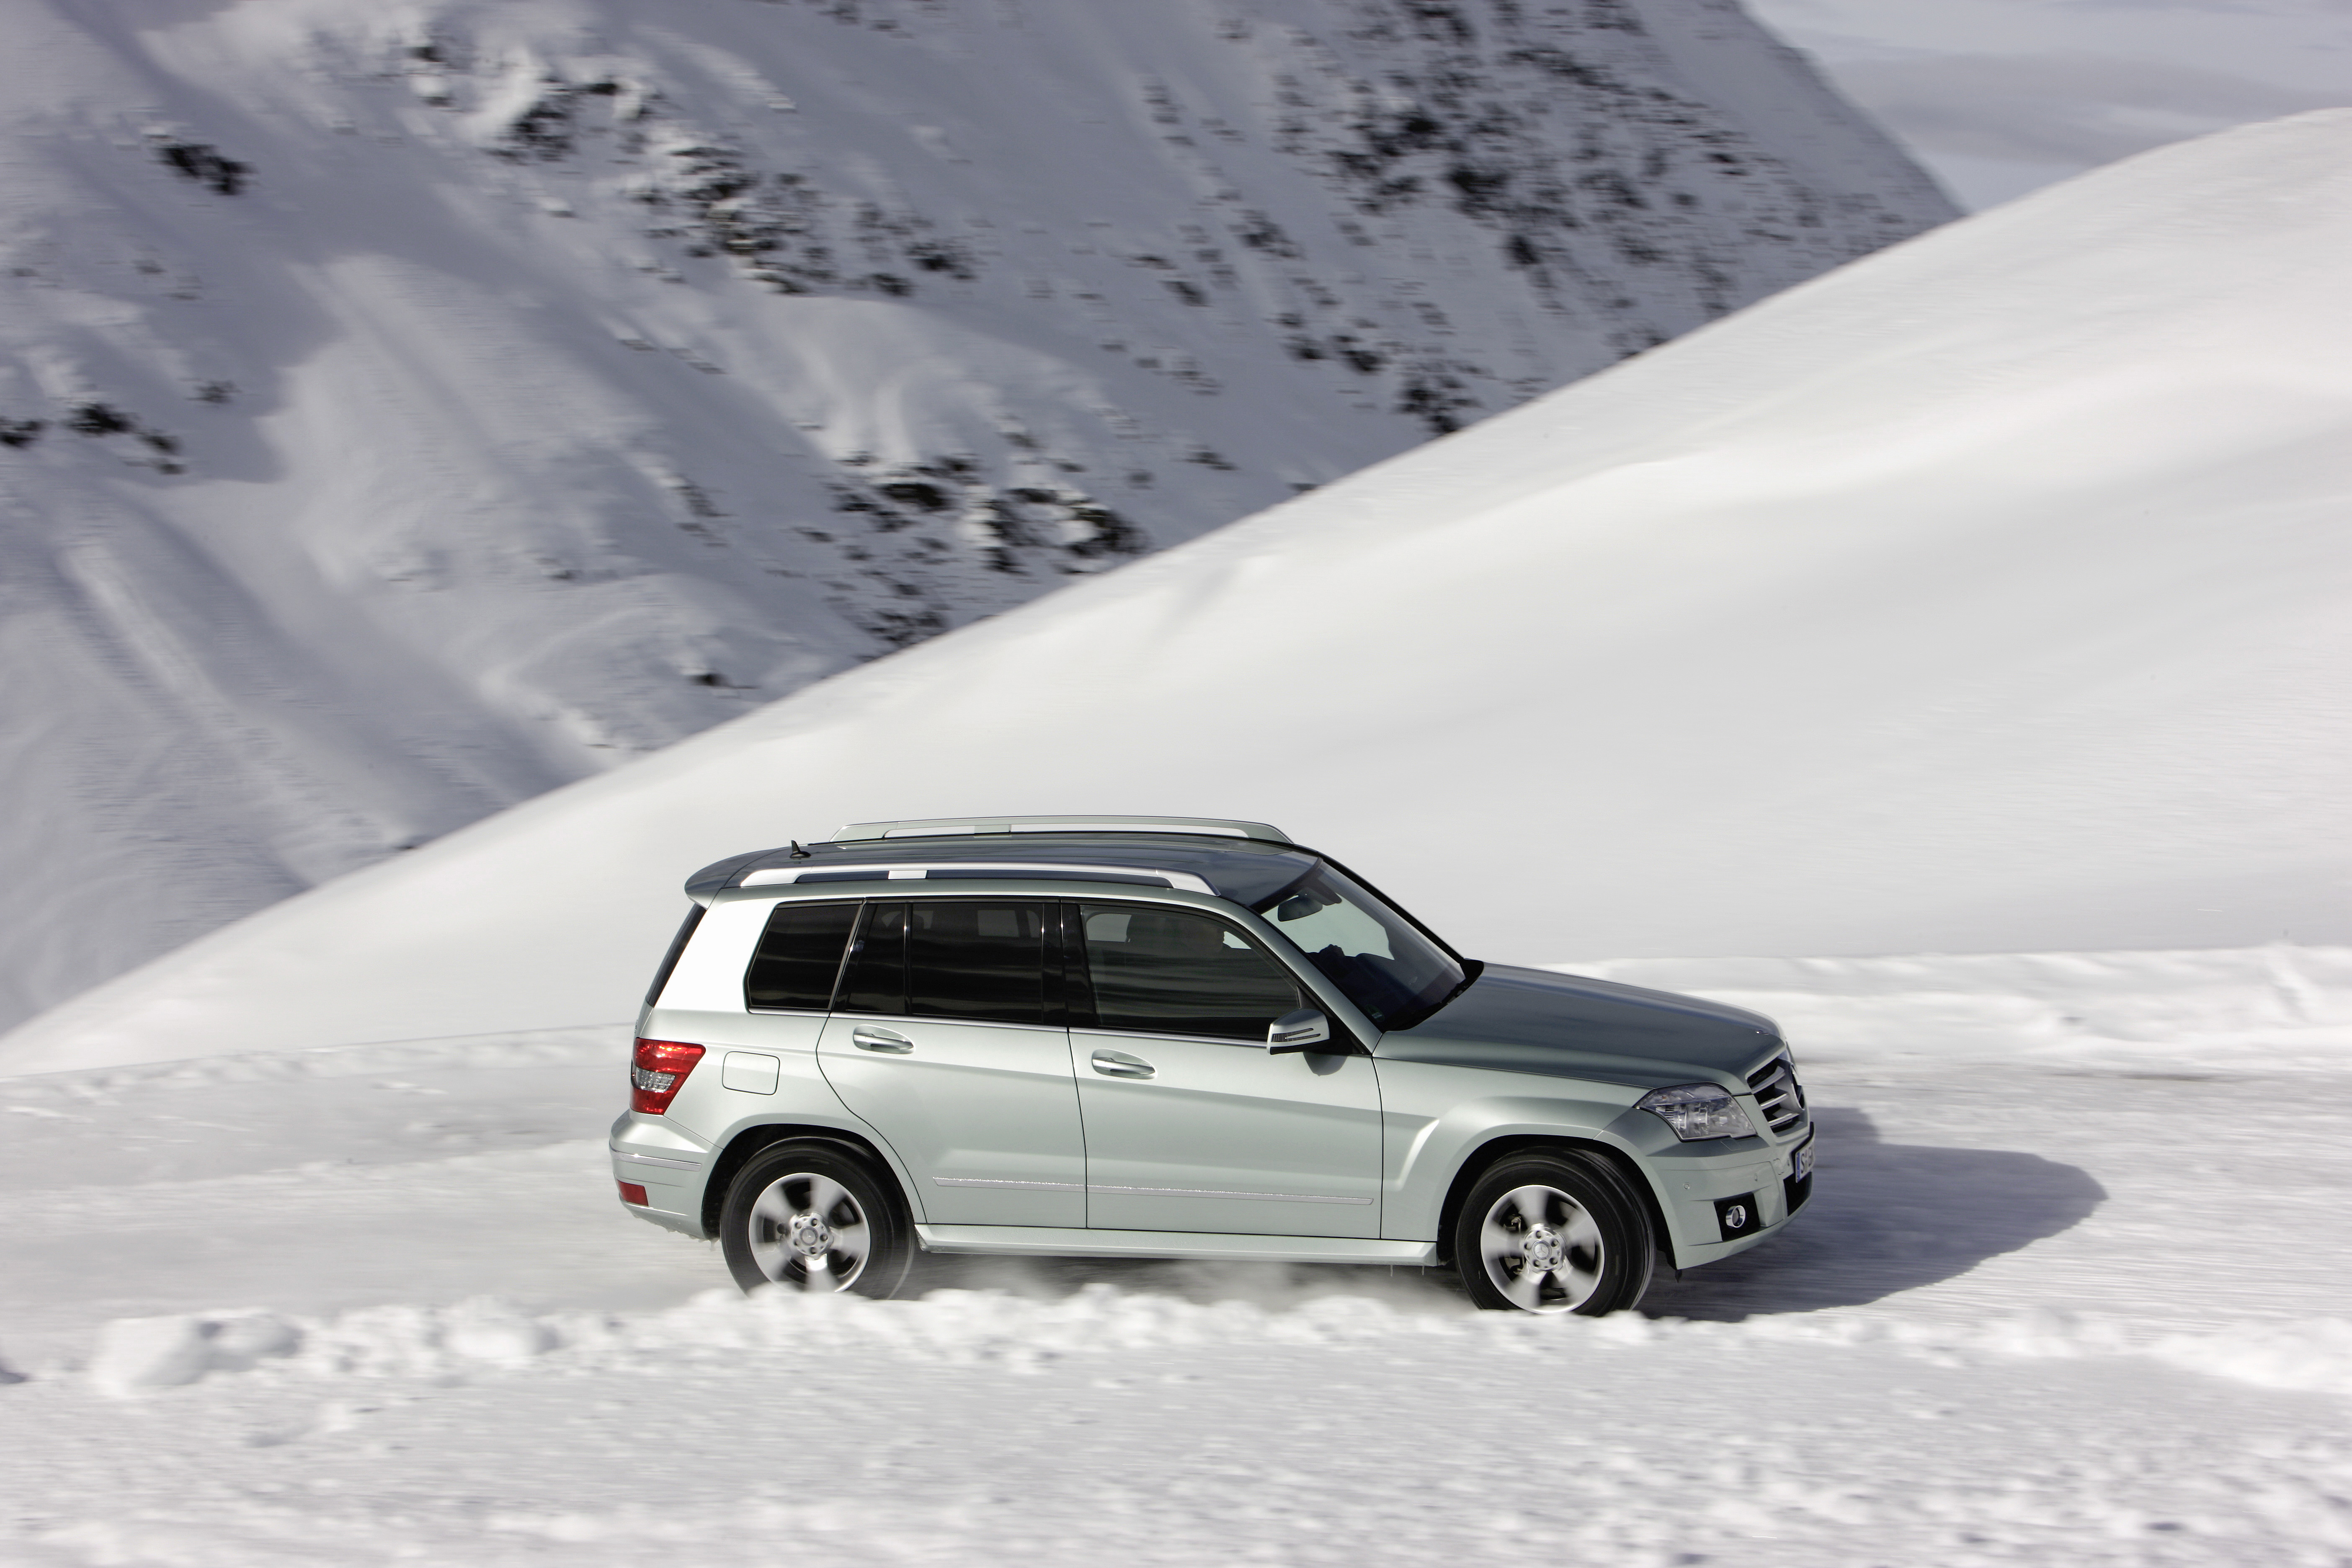 687522 1239025 5616 3744 08c1327 15 Just in Time for Christmas, The GLK has Landed